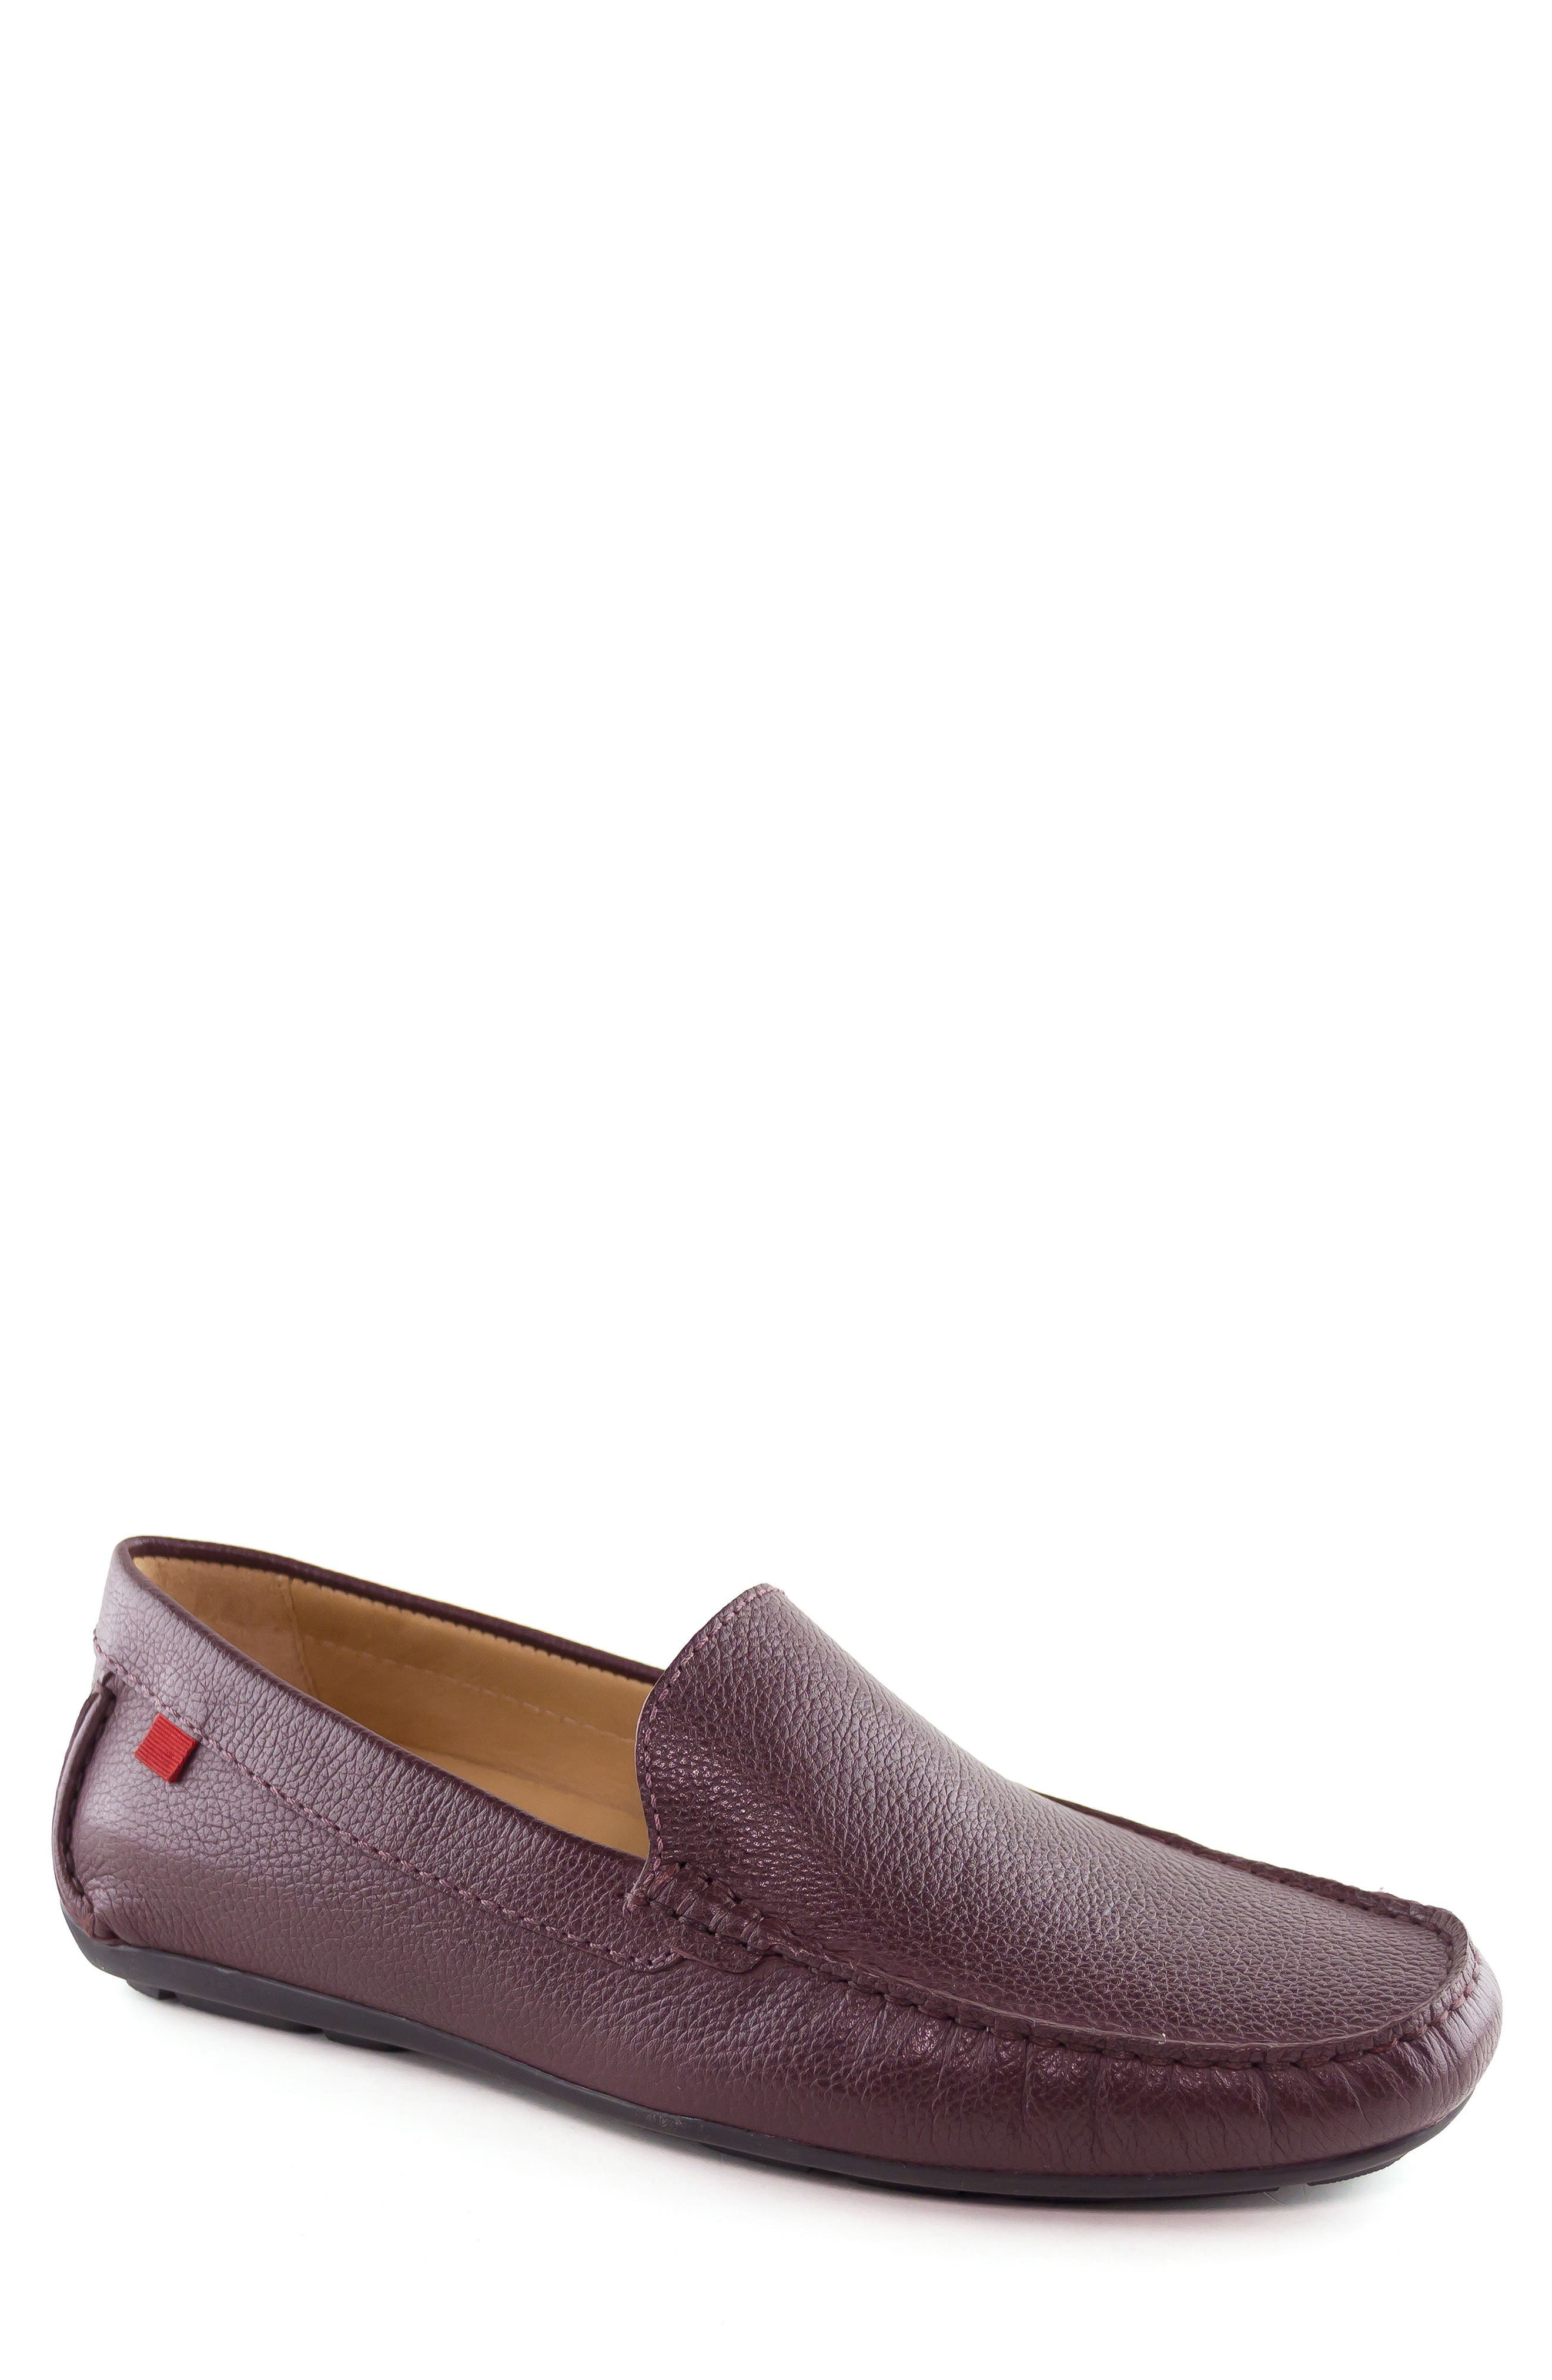 Venetian Driving Loafer,                         Main,                         color, WINE GRAINY